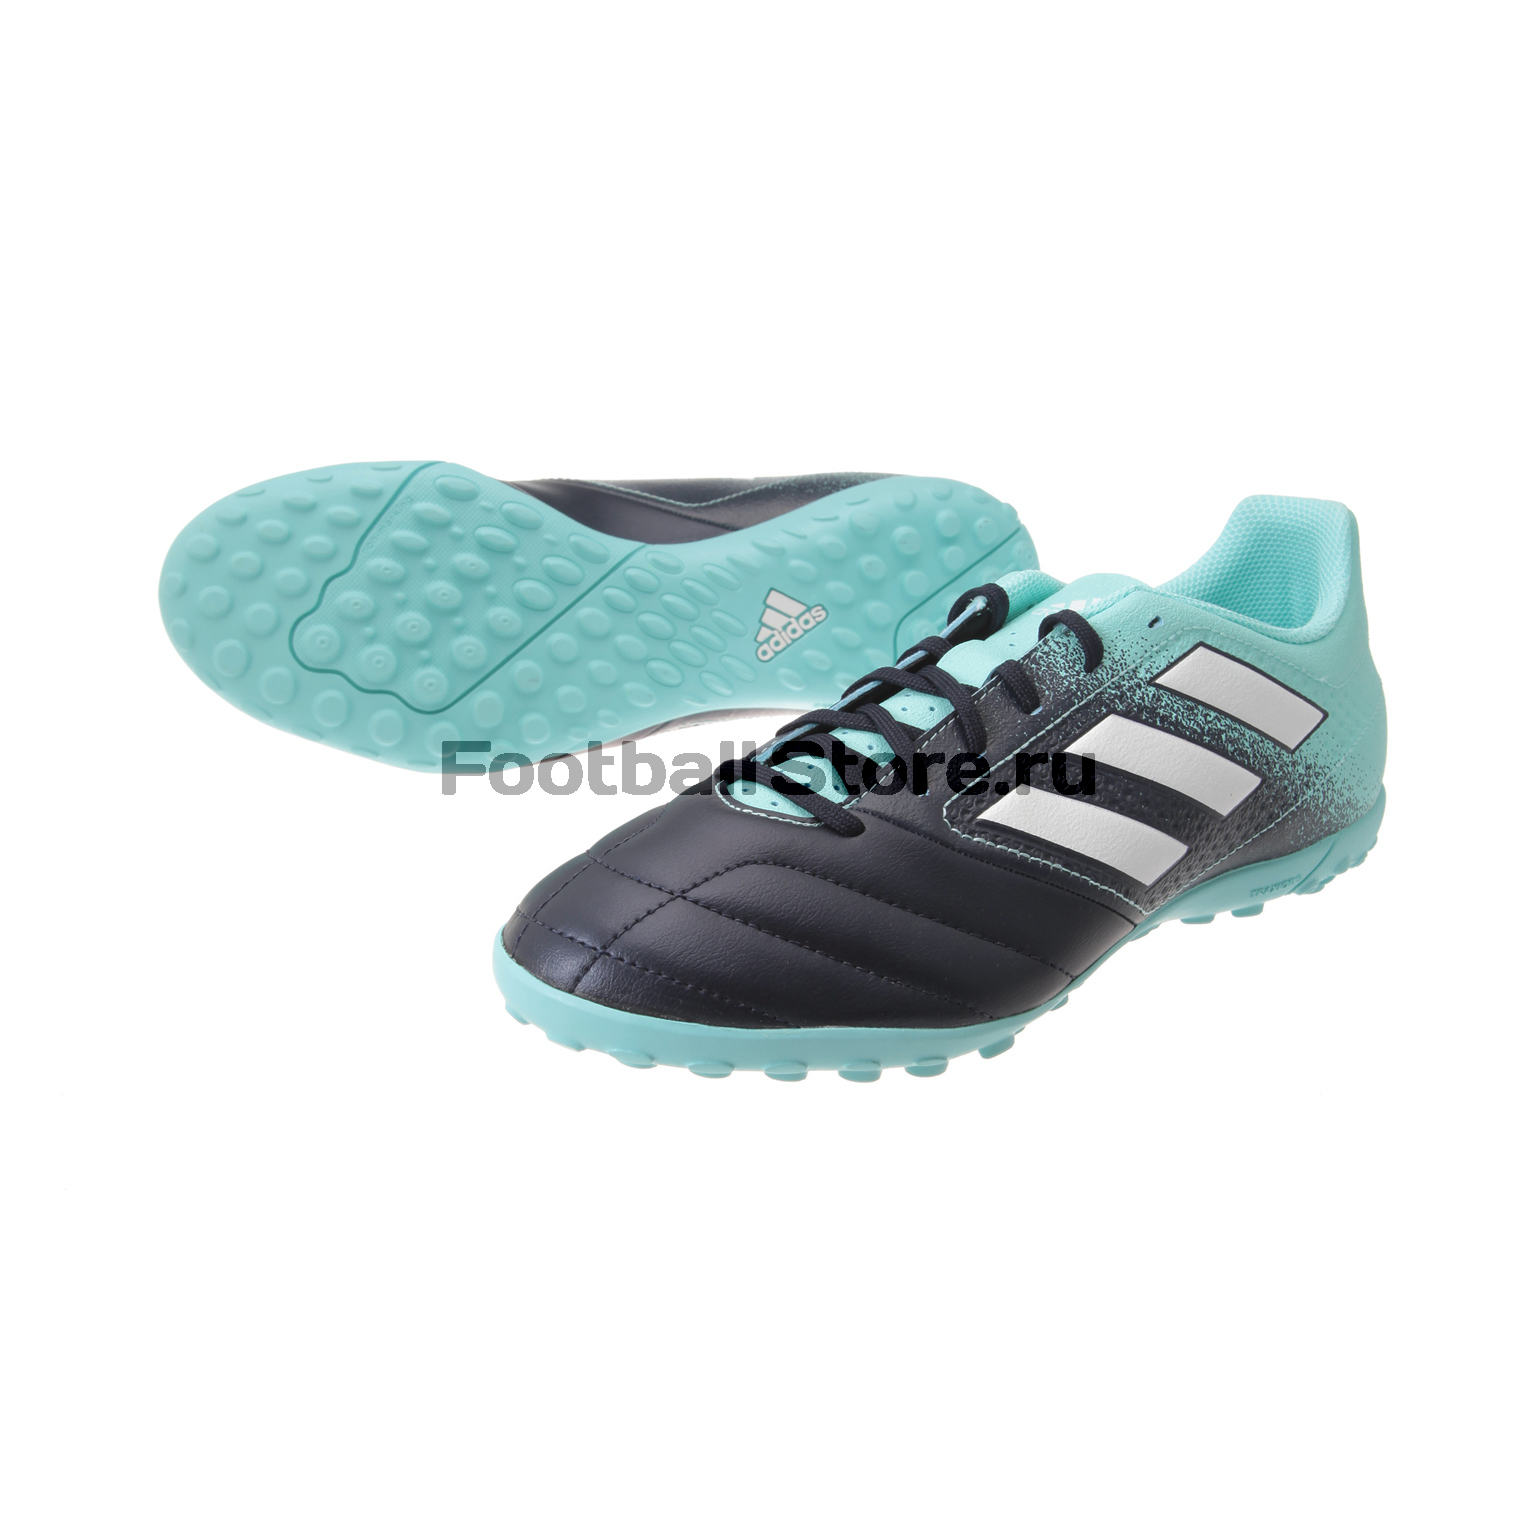 Шиповки Adidas Шиповки Adidas Ace 17.4 TF S77114  adidas performance tf bra print 1